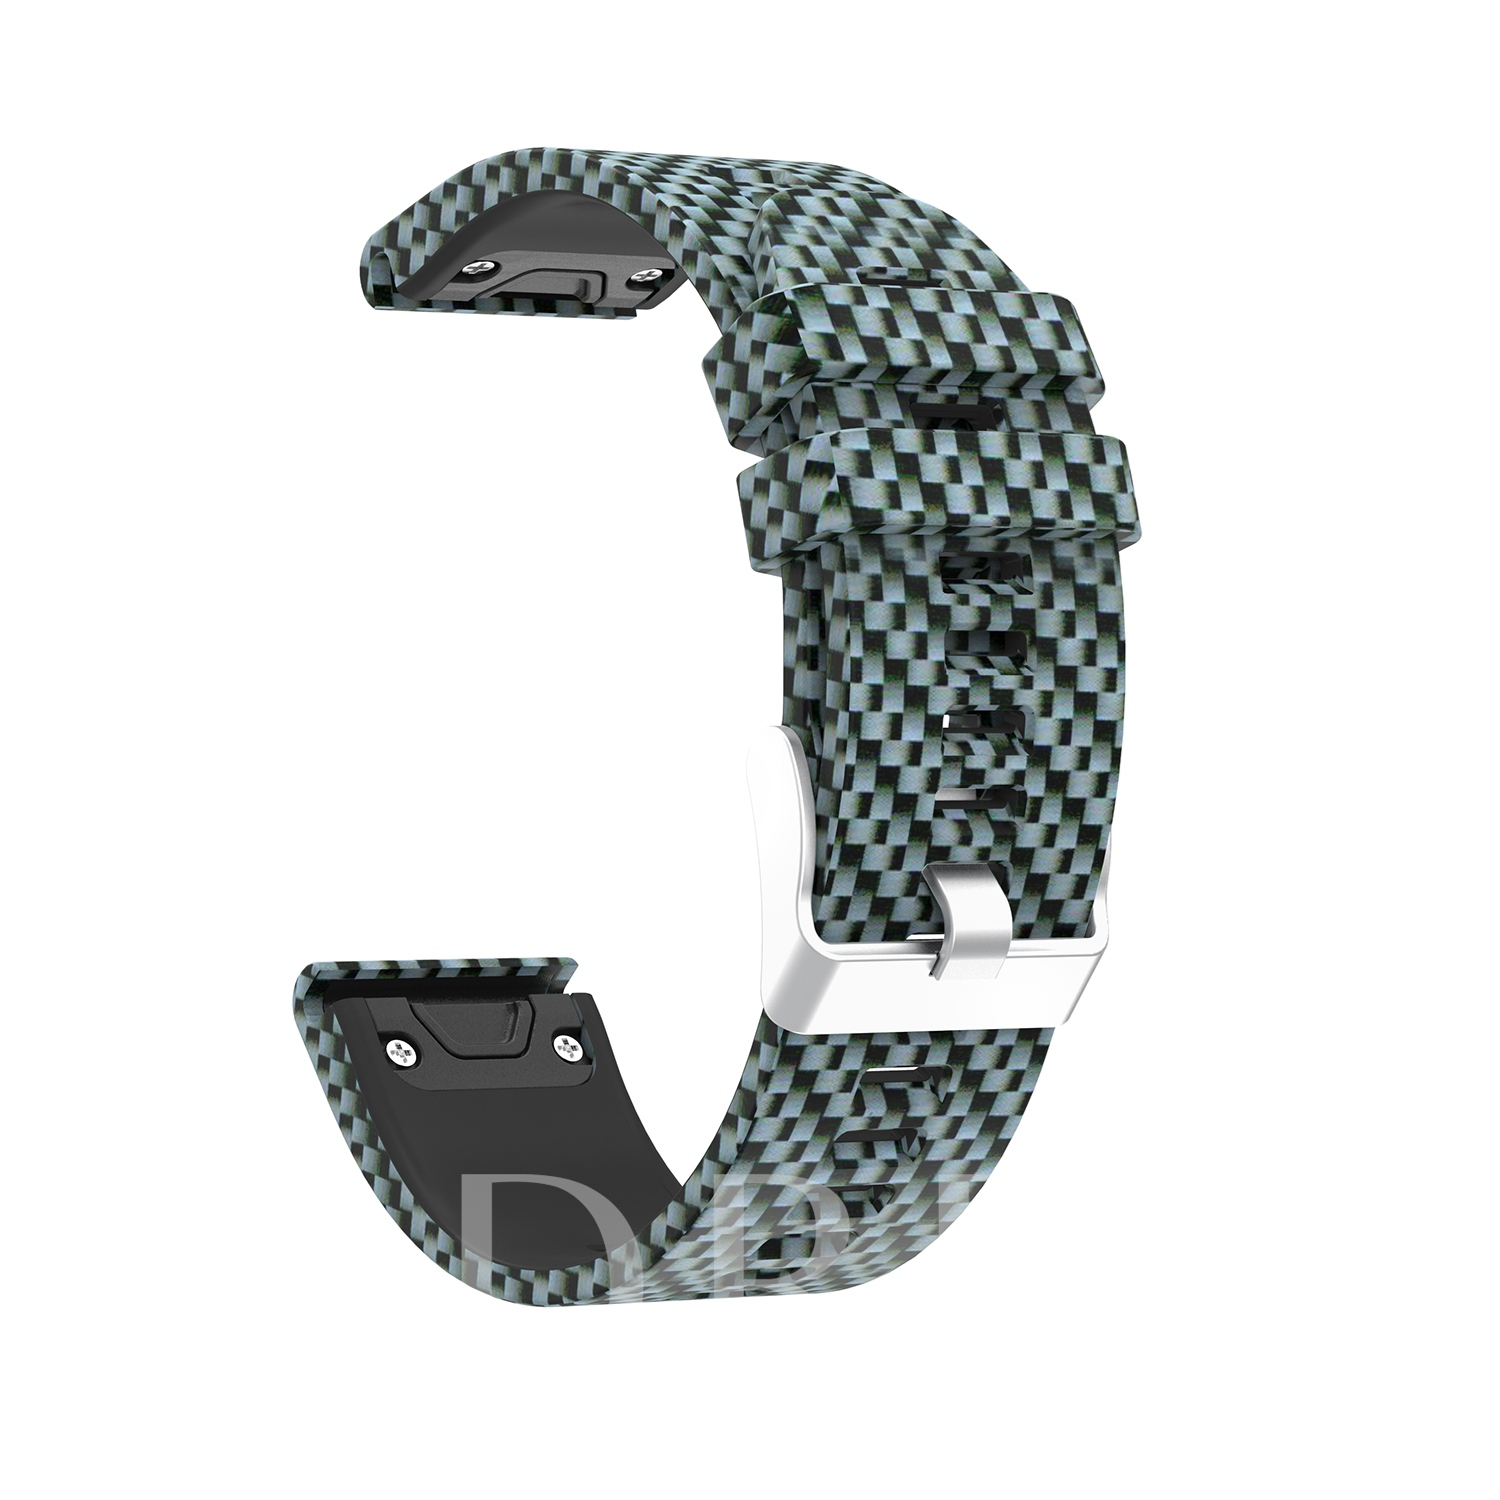 Fashion Leopard Smart Watch Replacement for Garmin forerunner 935